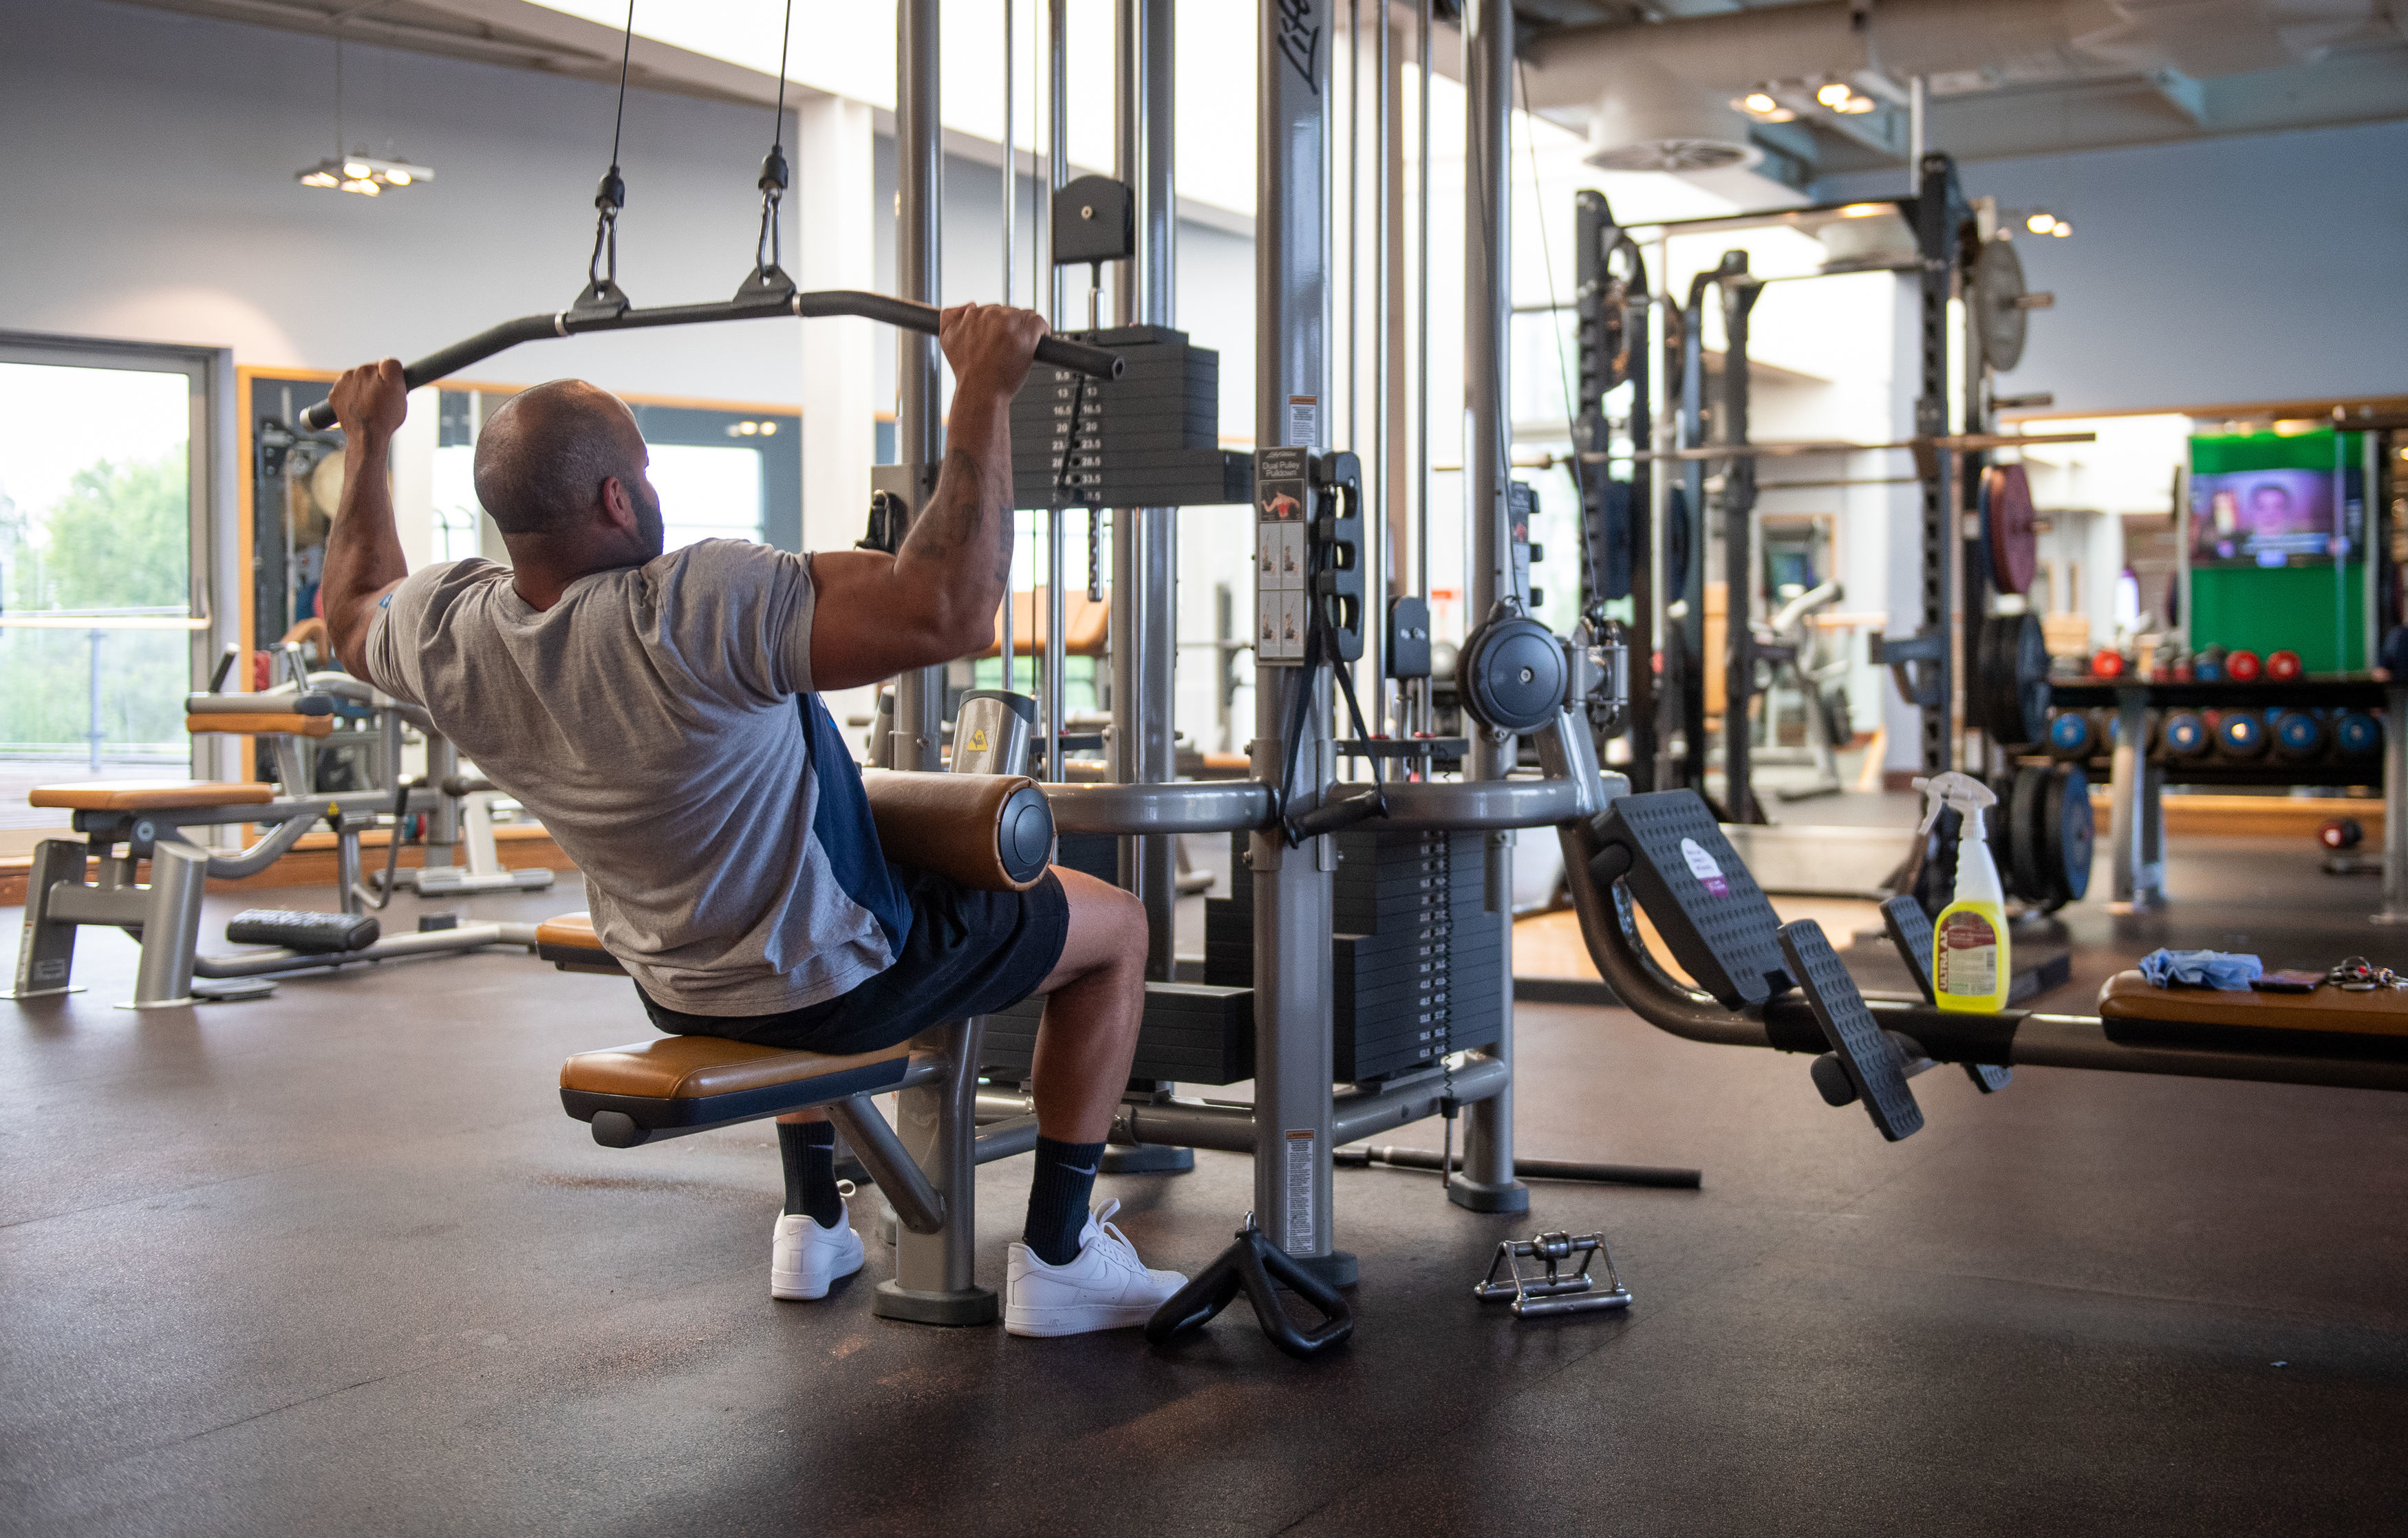 Gym-goers have a while to go yet before indoor fitness centres reopen